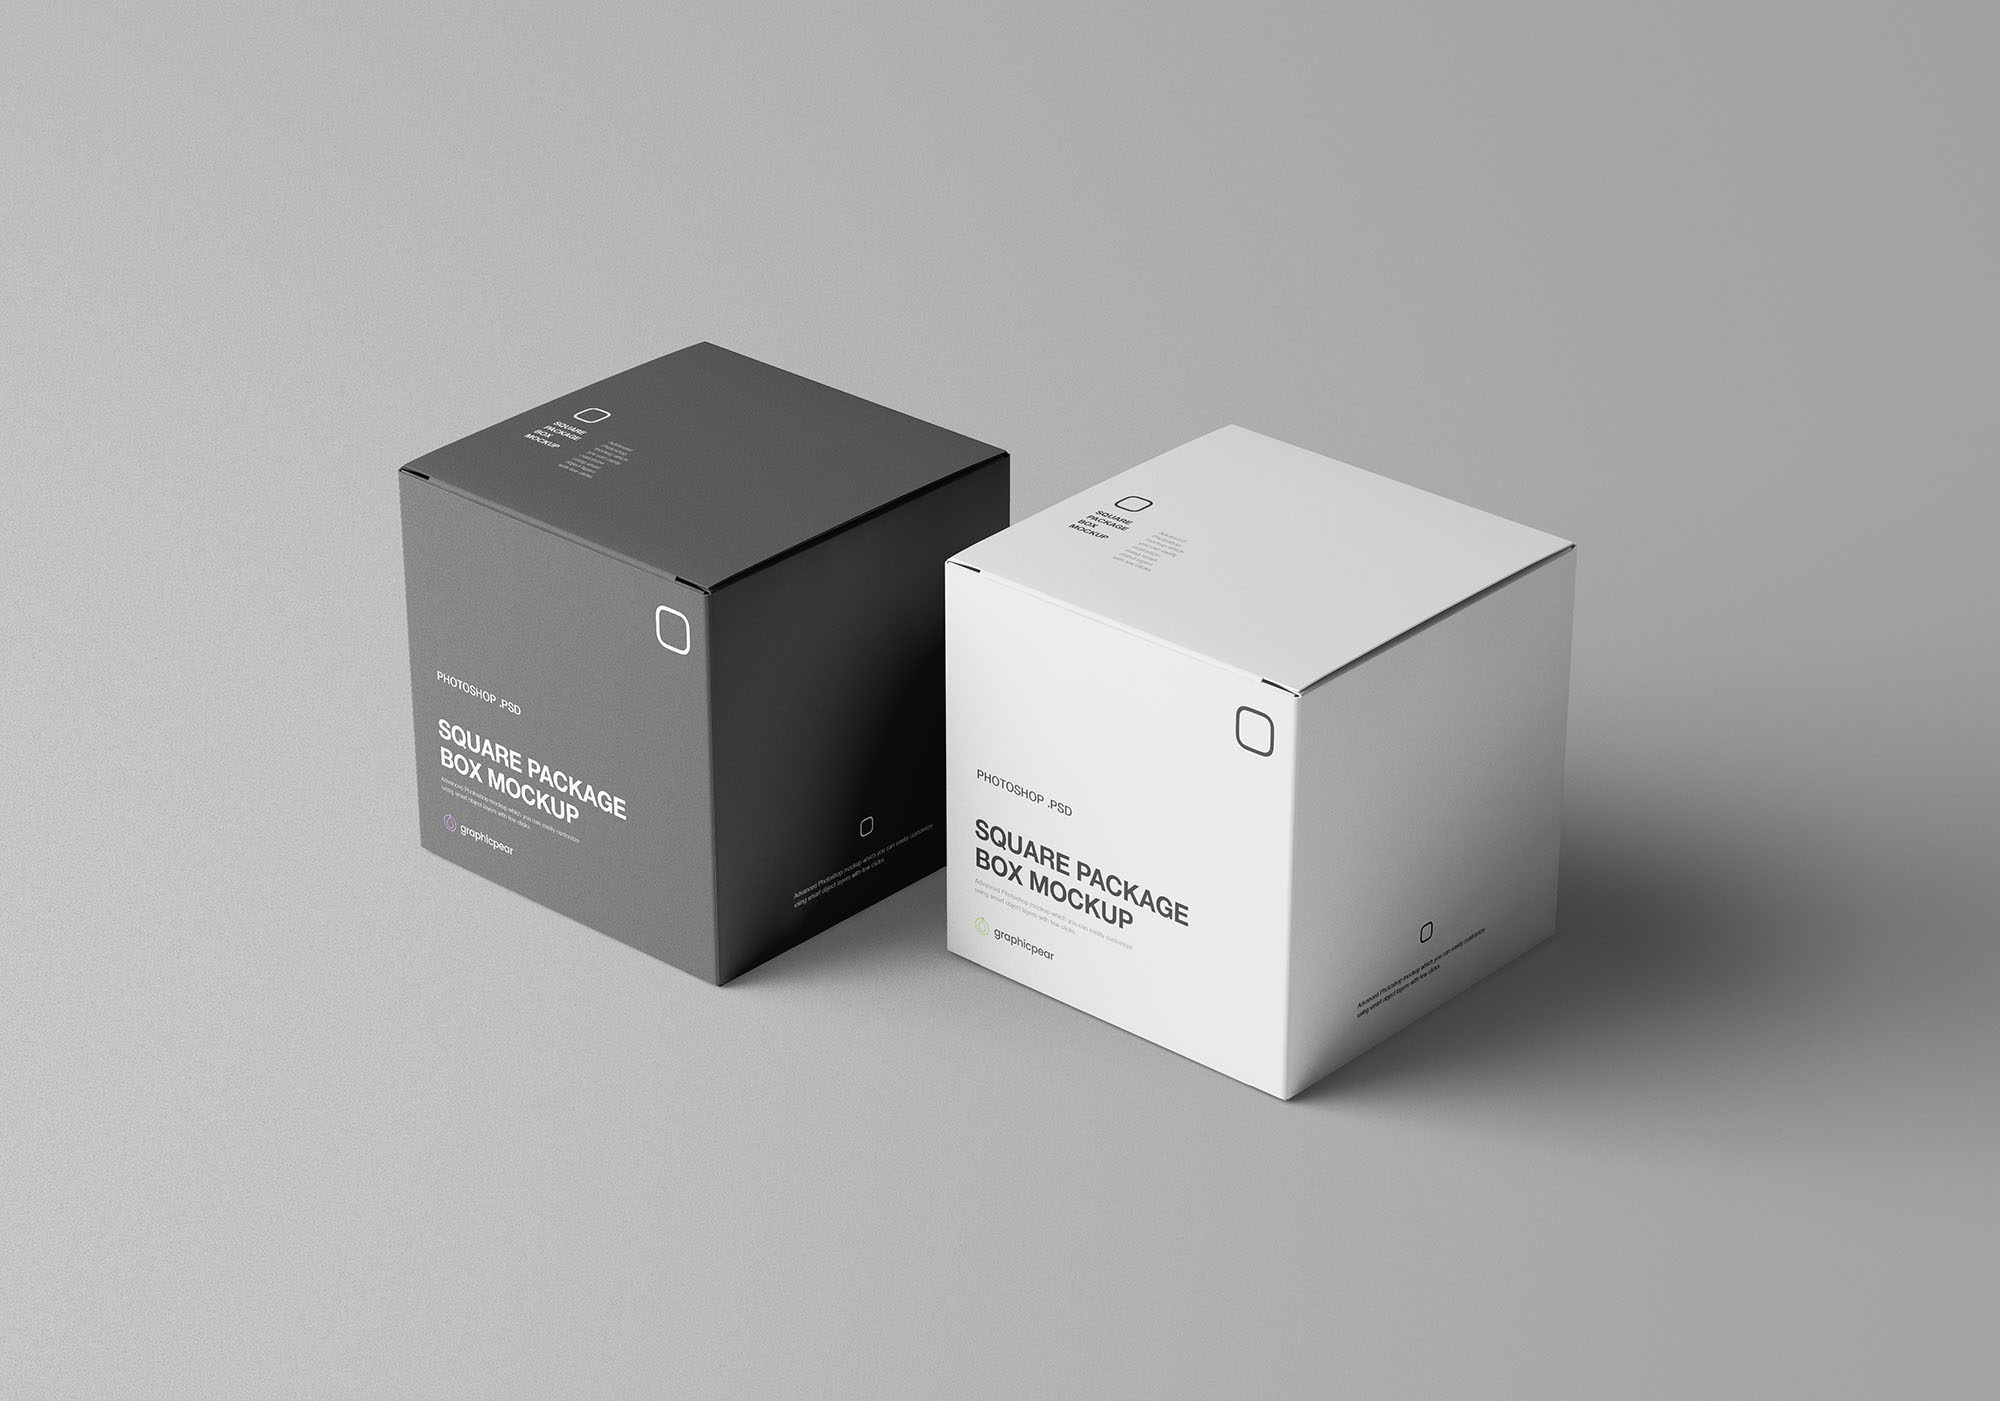 Square Package Box Mockup 3